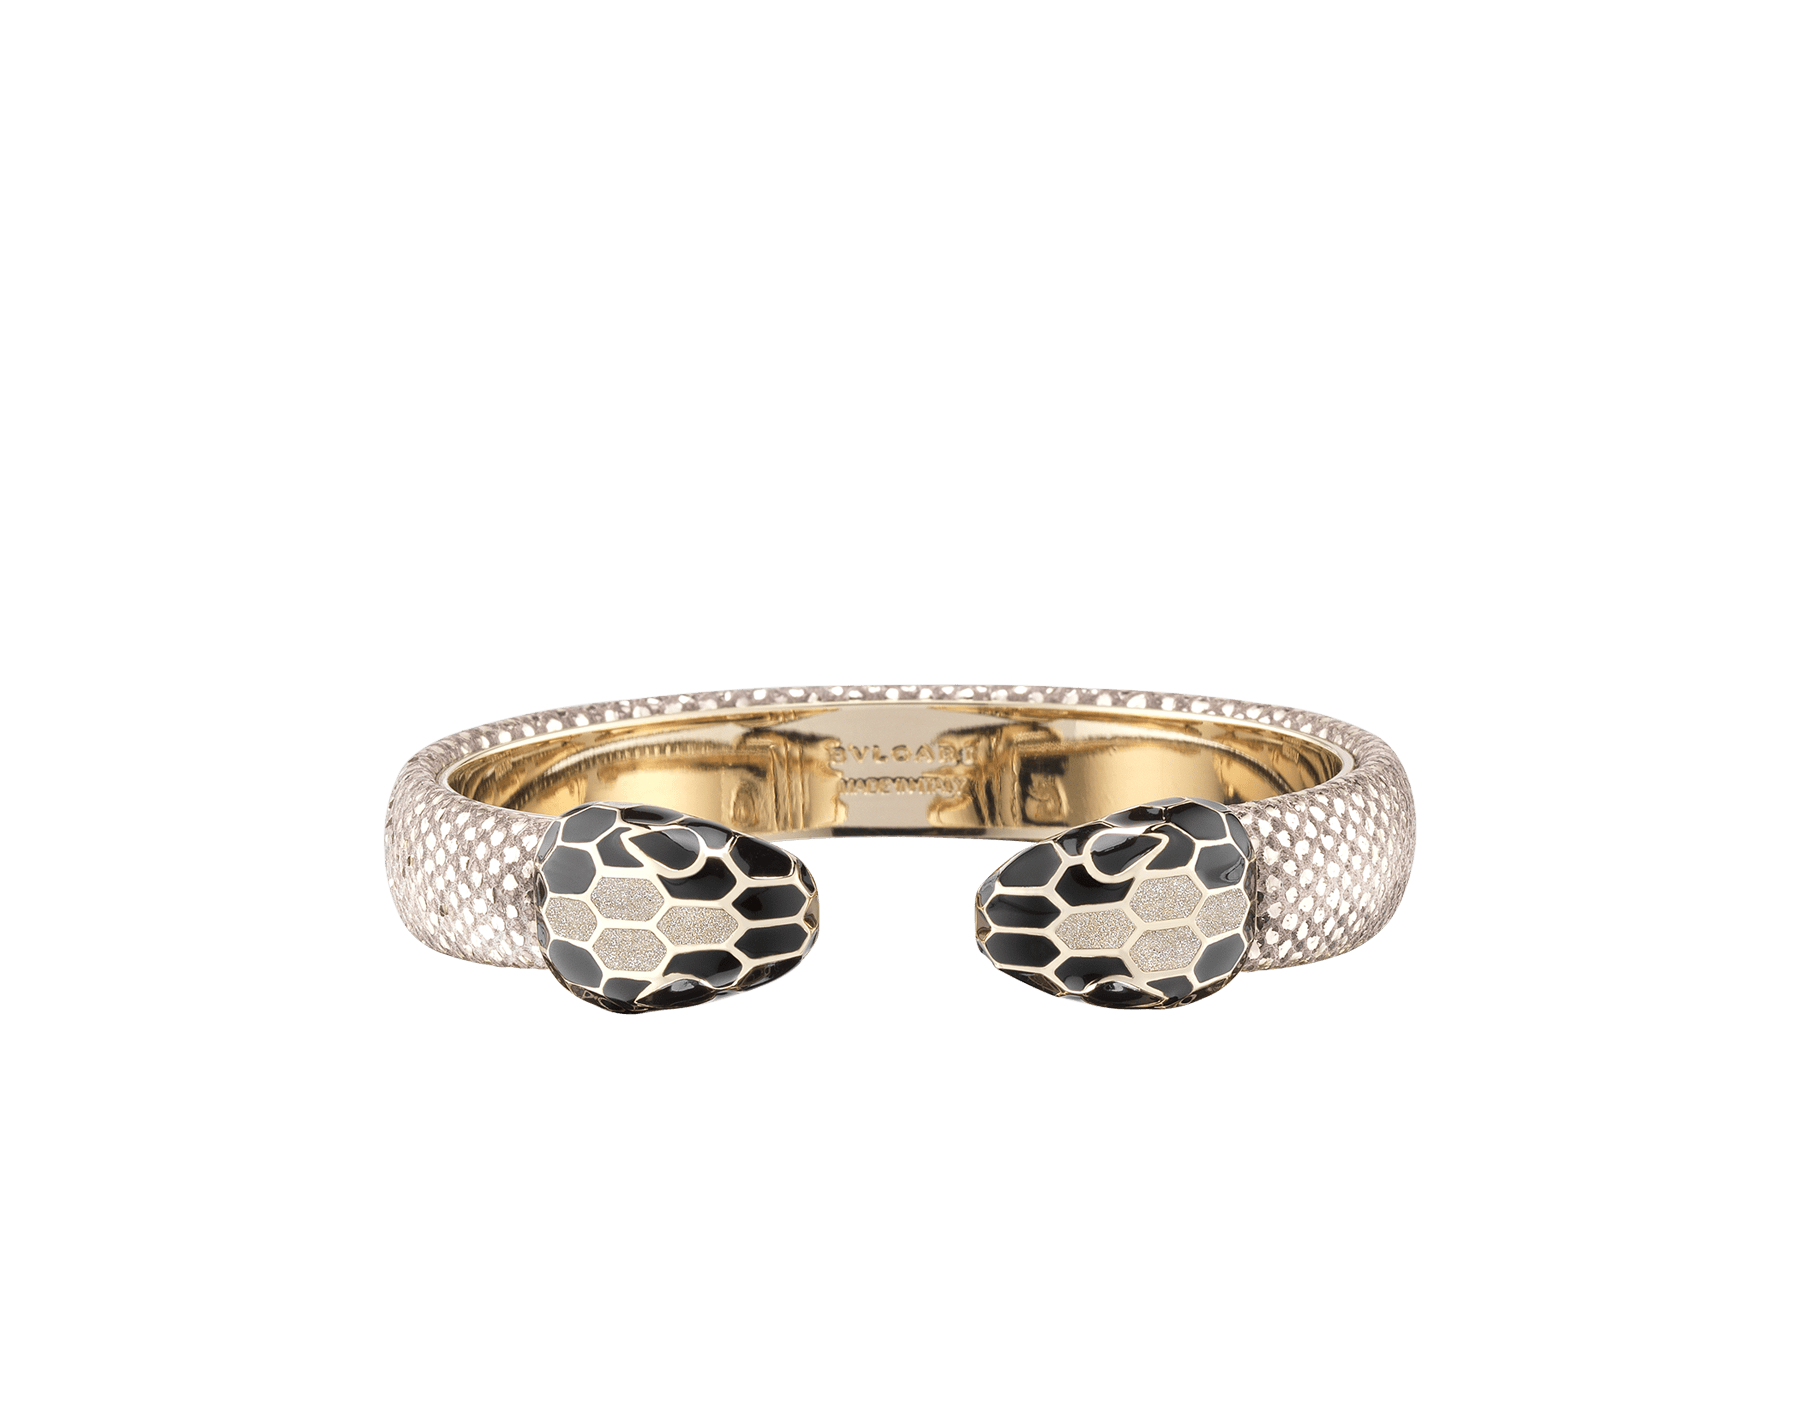 Serpenti Forever bangle bracelet in milky opal metallic karung skin, with brass light gold plated hardware. Iconic contraire snakehead décor in black and glitter milky opal enamel, with black enamel eyes. 288377 image 1